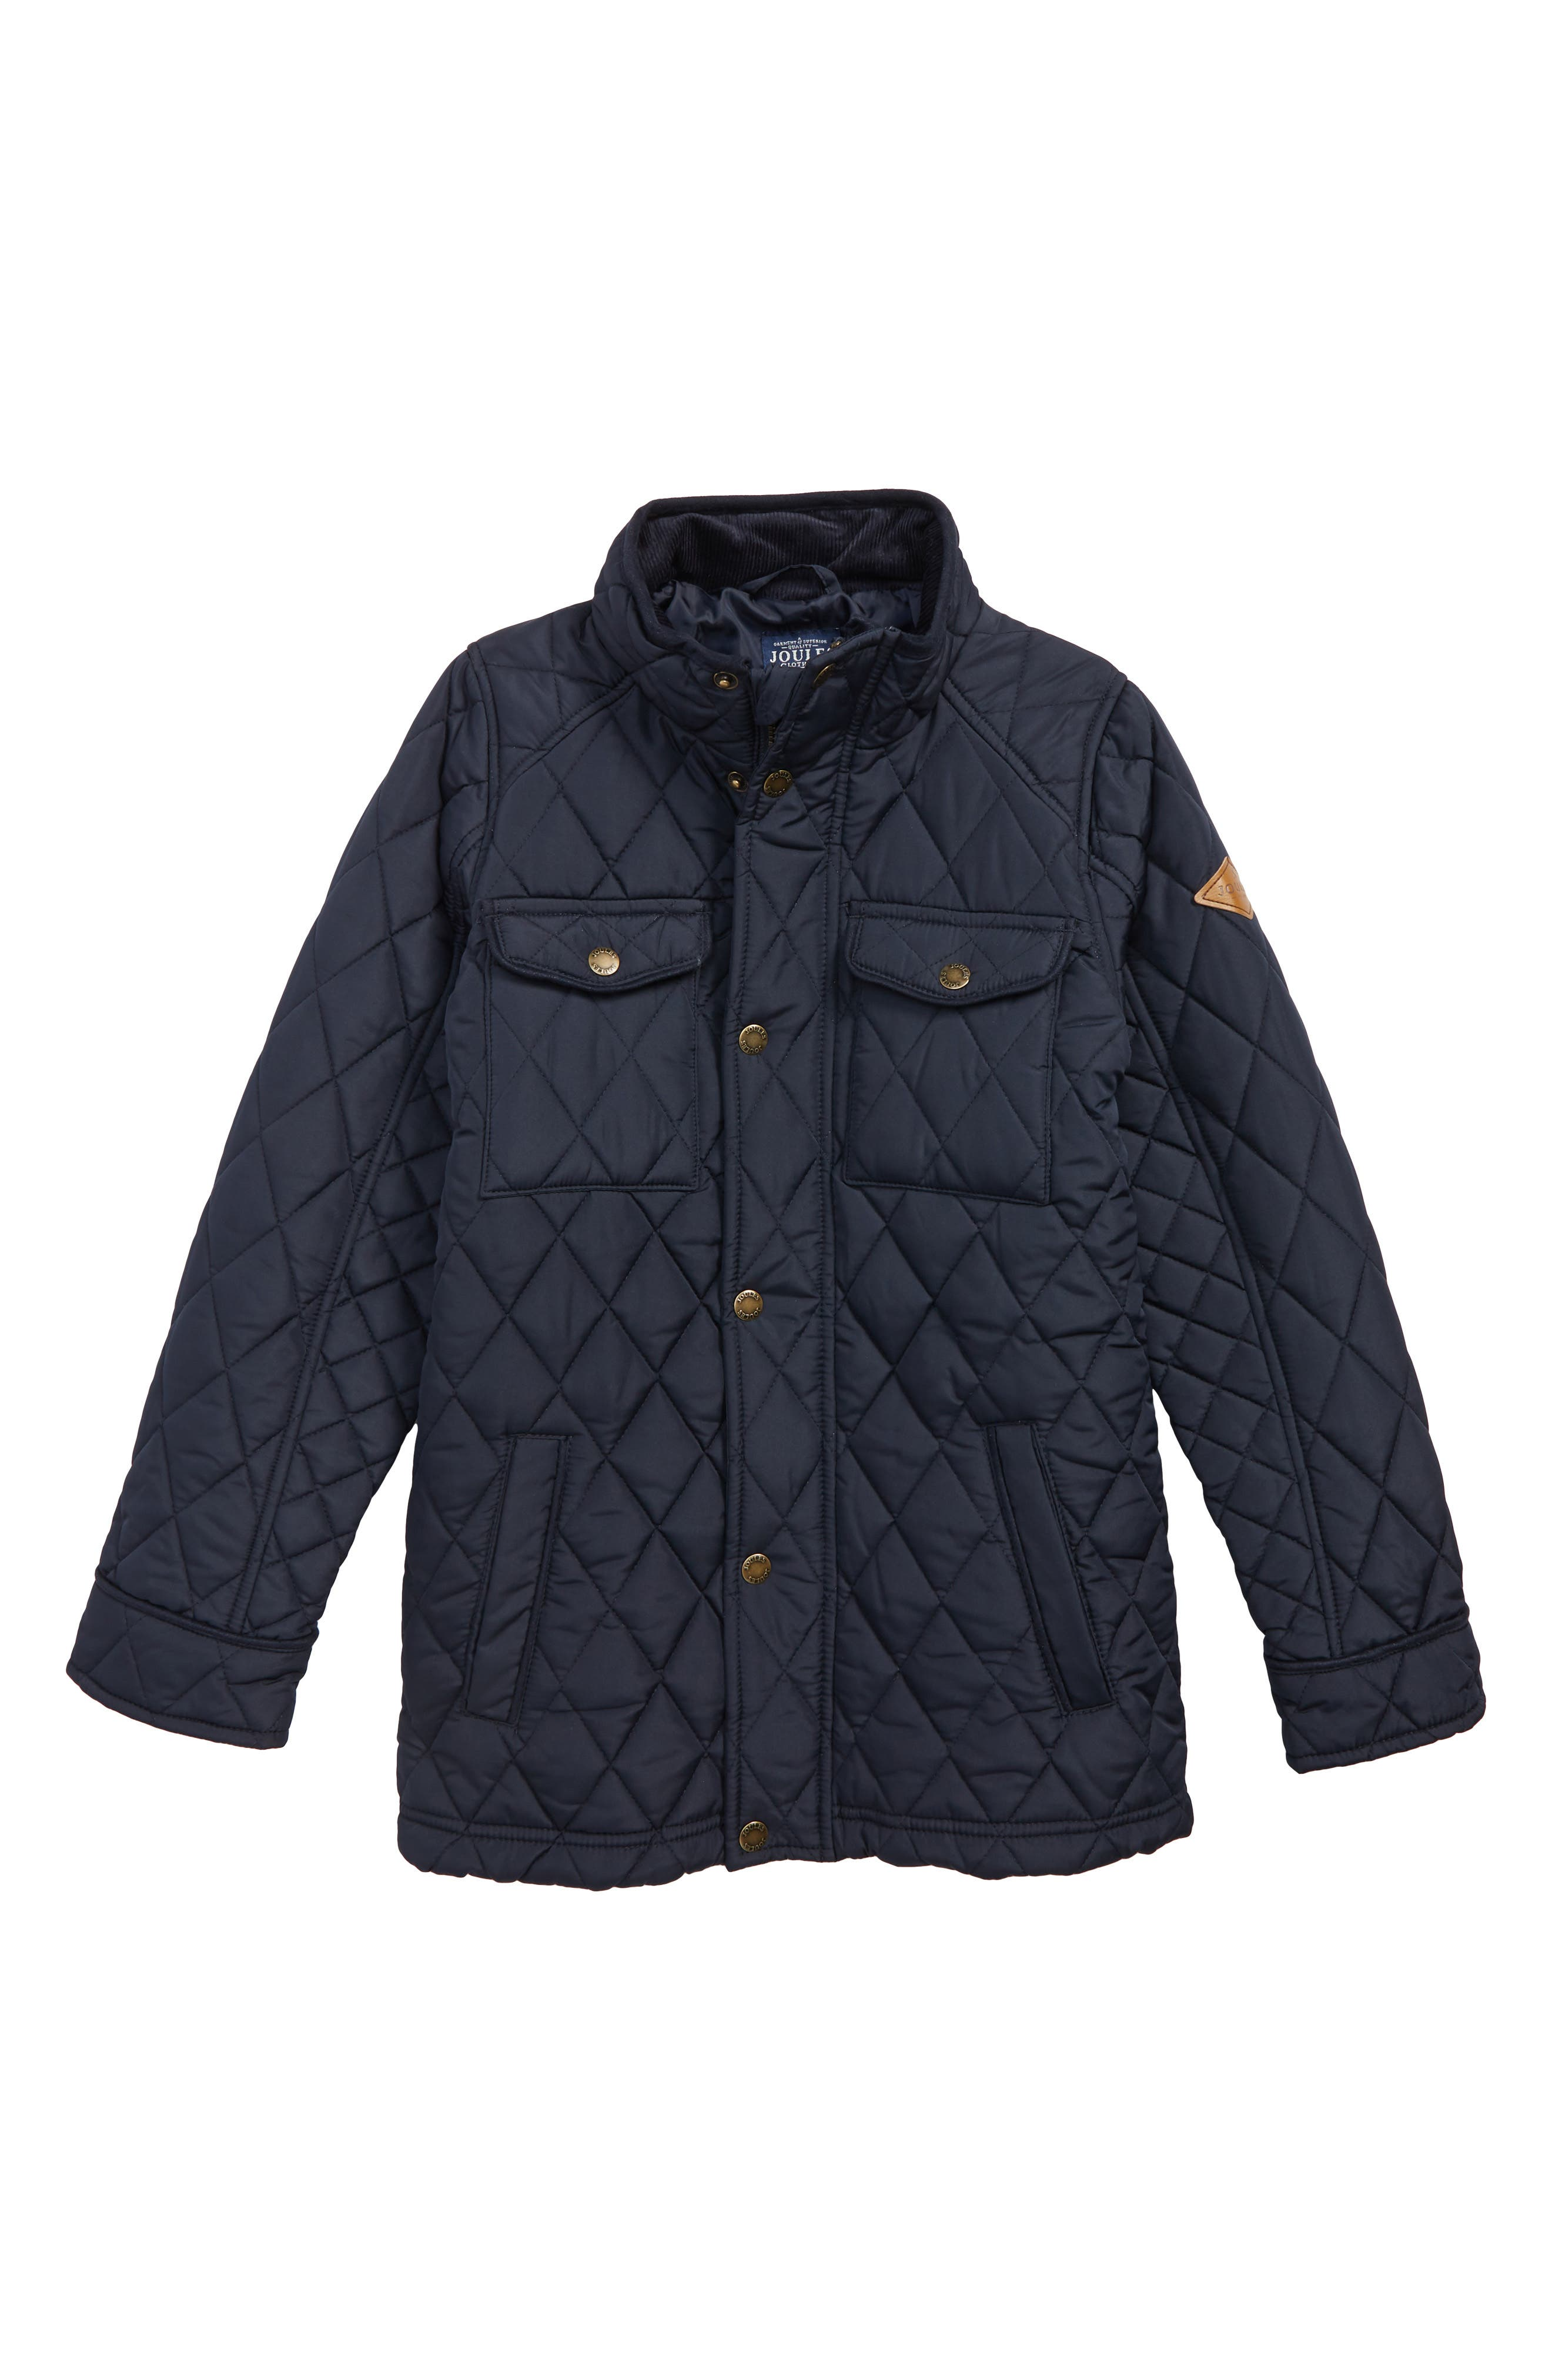 Stafford Quilted Jacket,                             Main thumbnail 1, color,                             MARINE NAVY